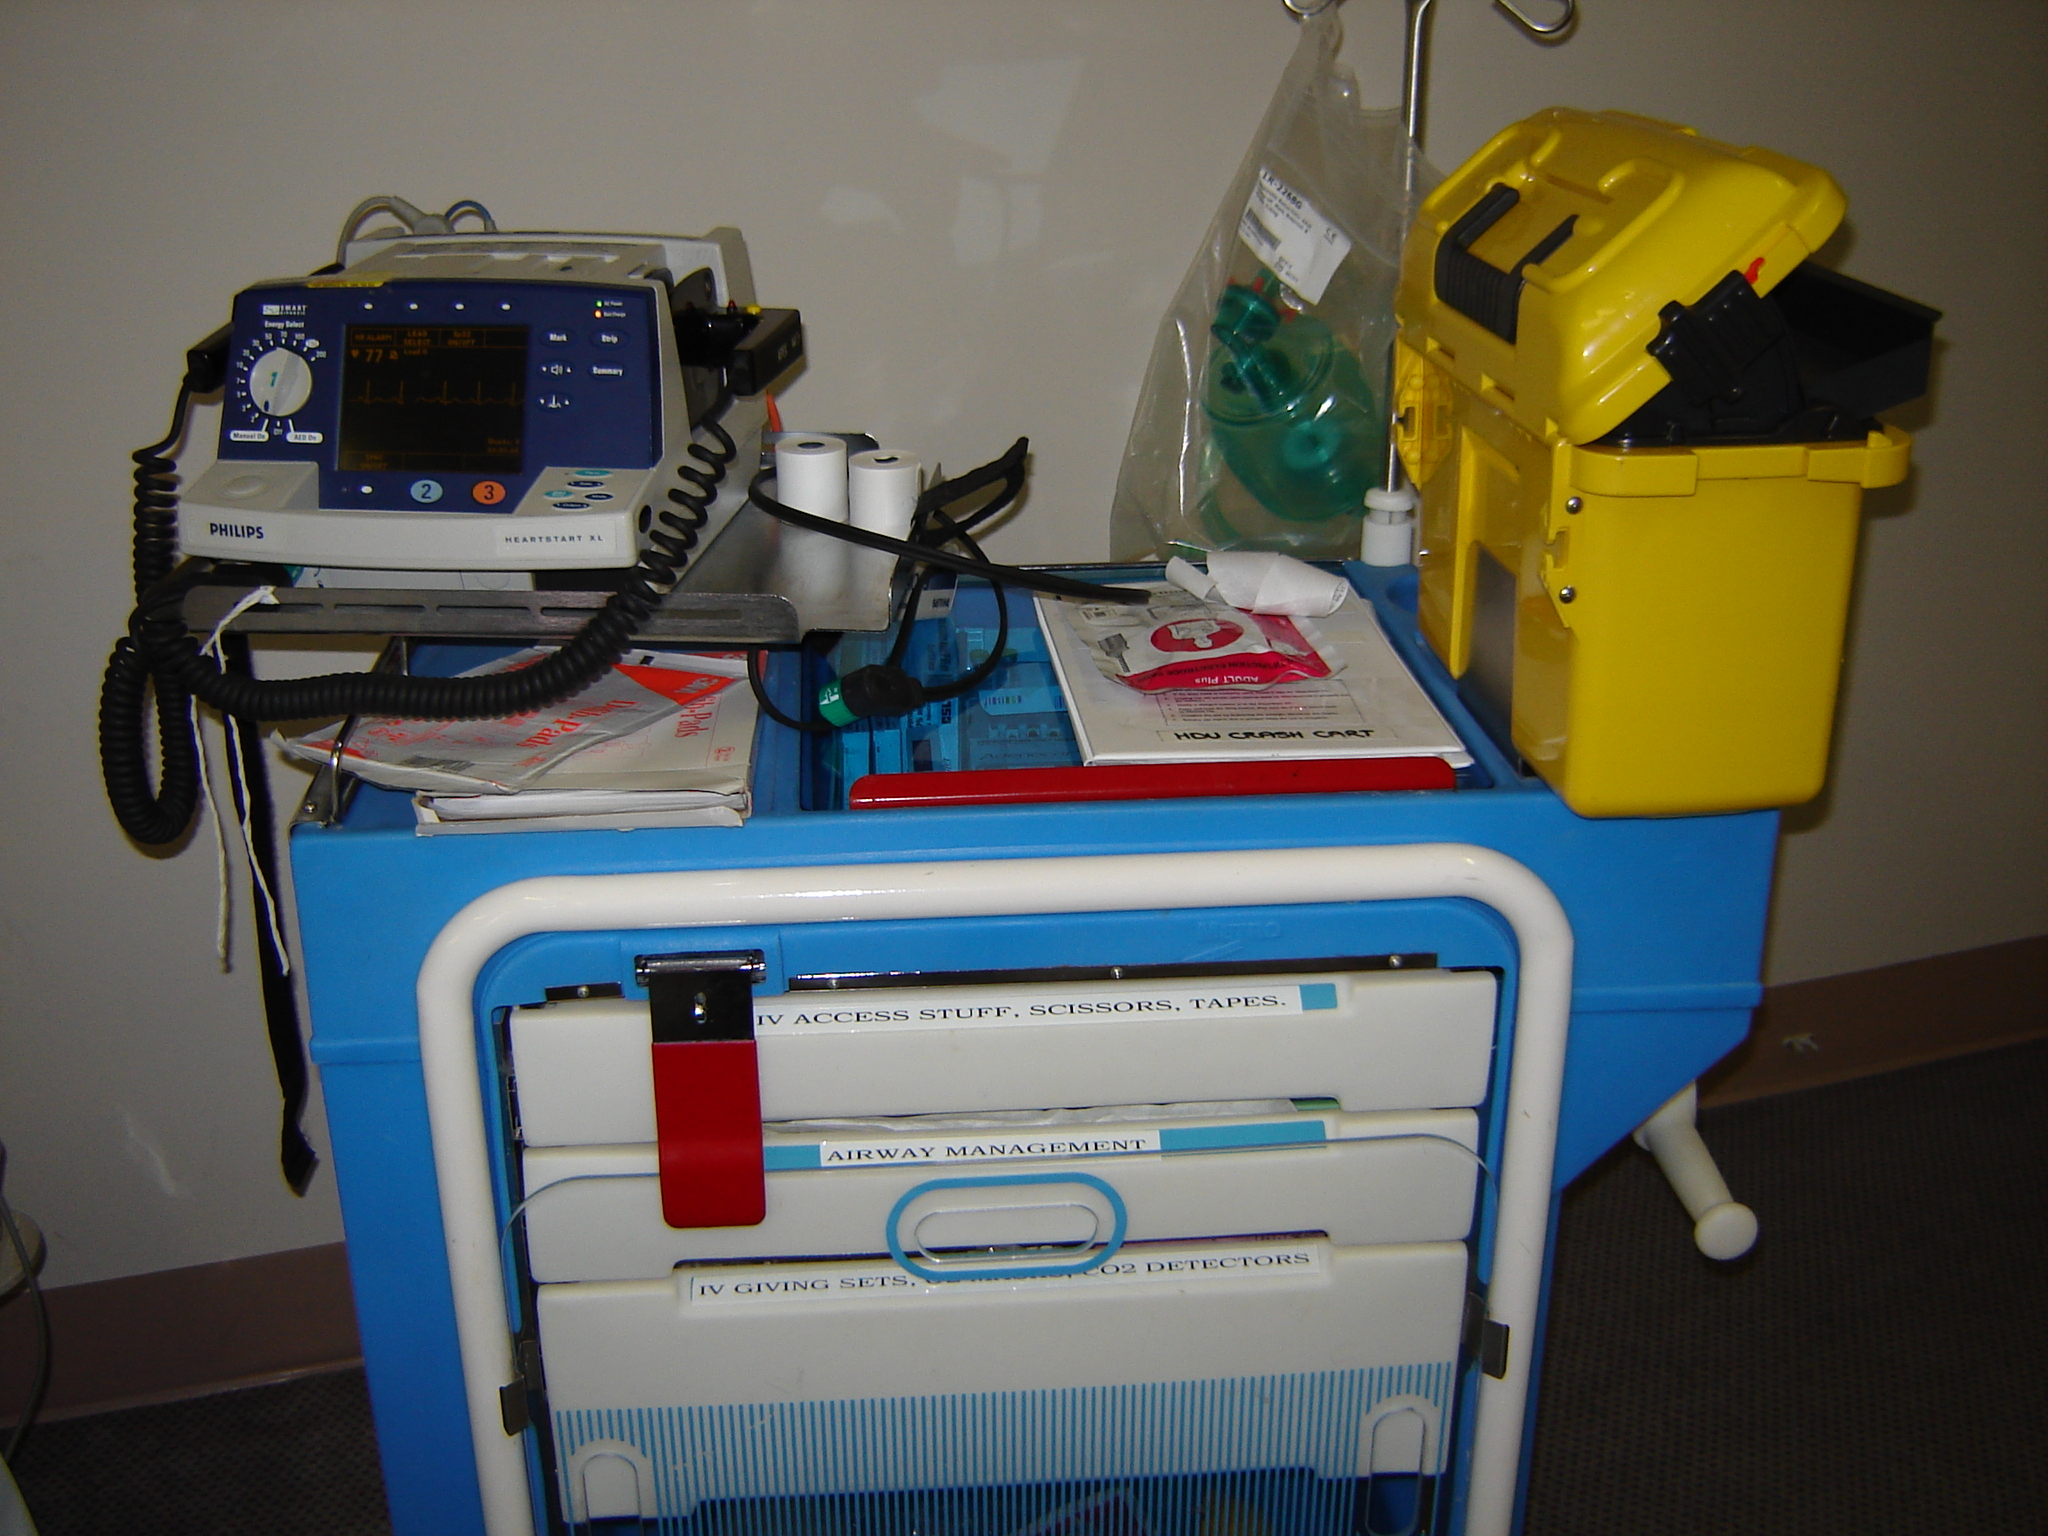 Resuscitation trolley checking: Making it a priority